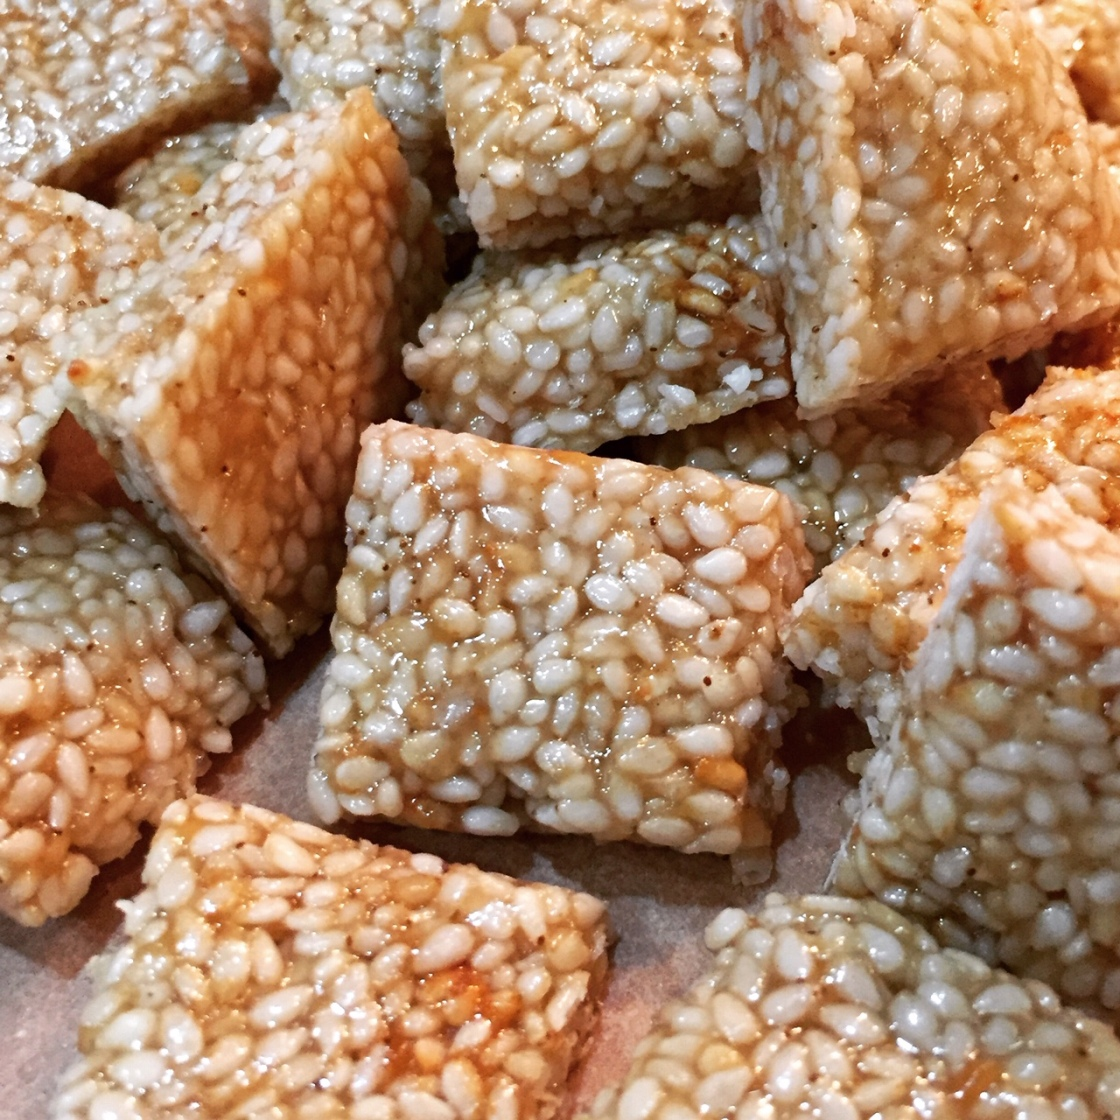 Macro image showing the honeycomb like structure of this light, aromatic crunchy candy topped with flakey sea salt..